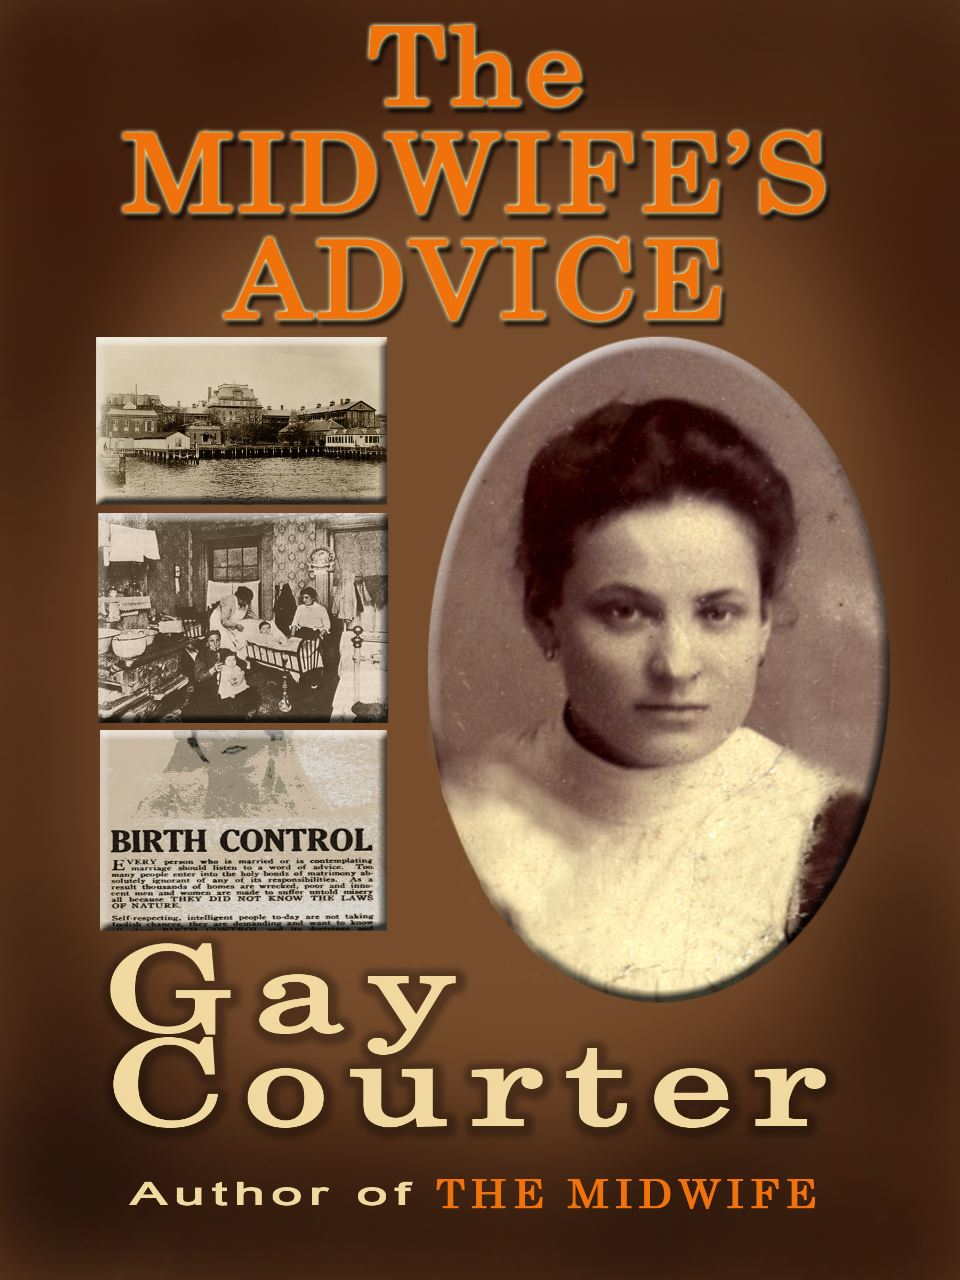 The Midwfe's Advice